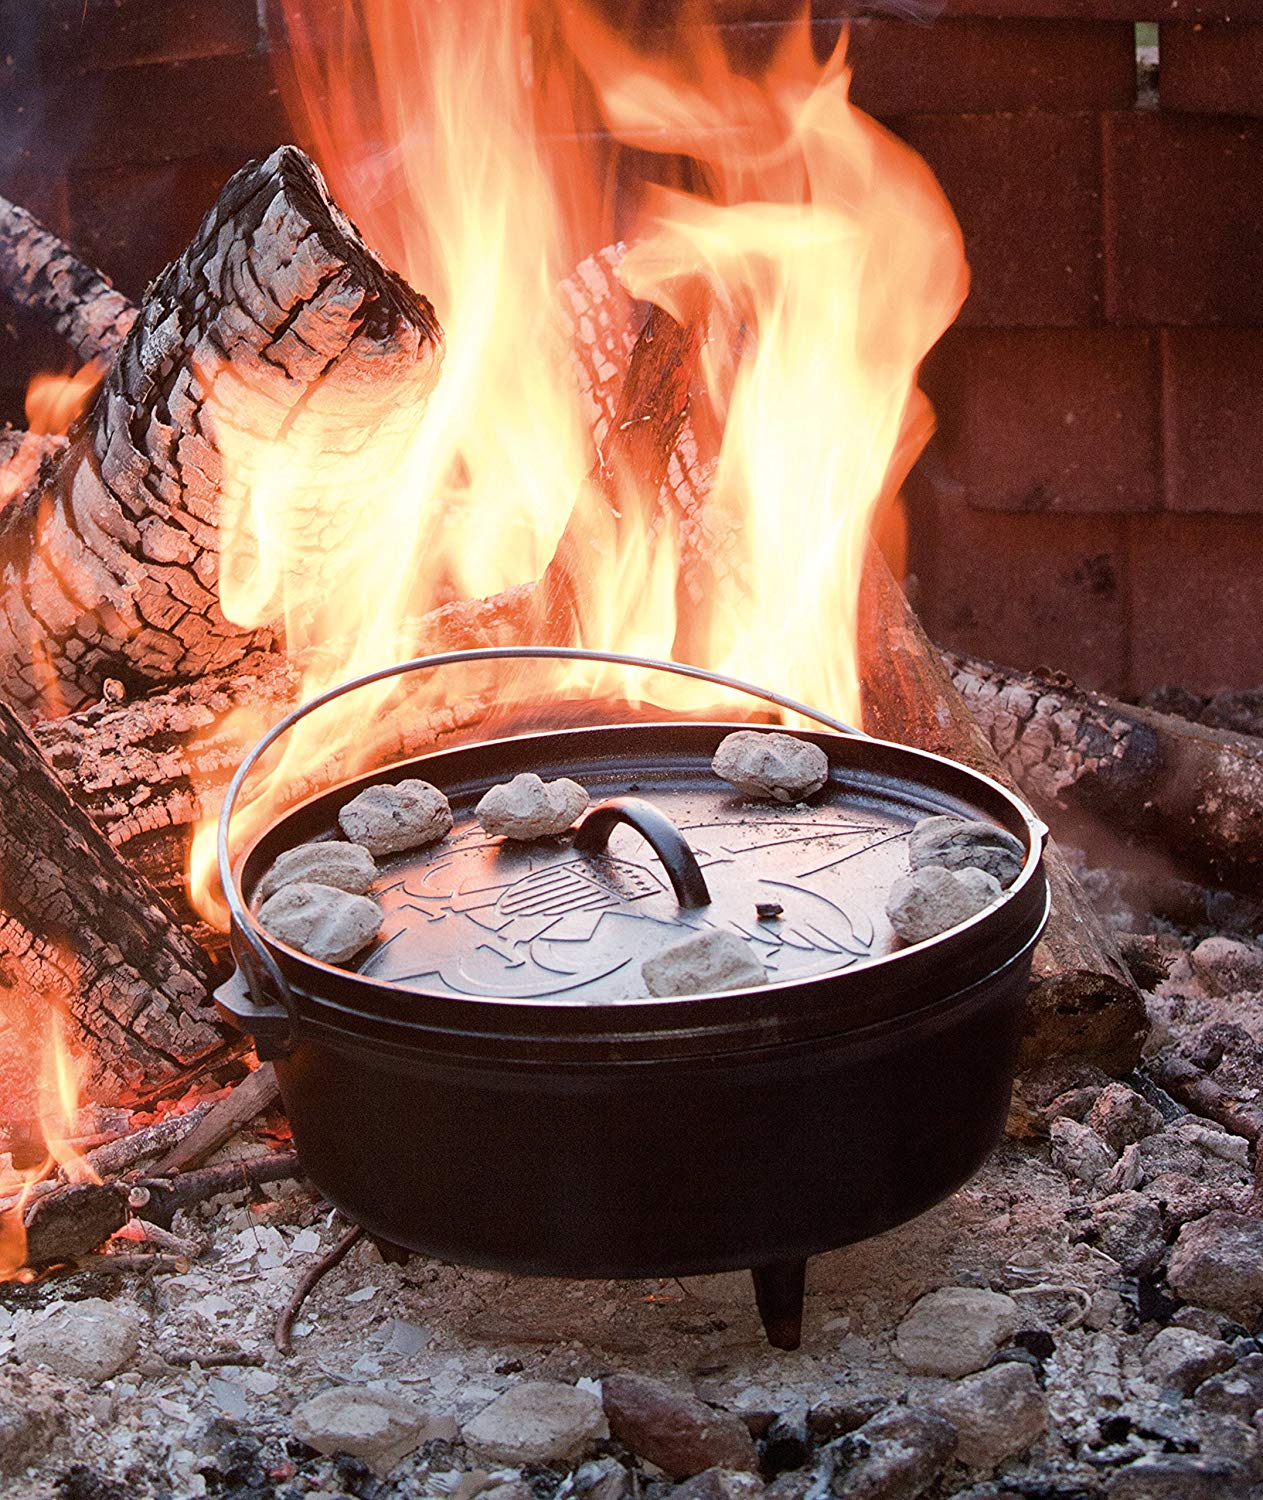 eagle-scout-gifts-oven